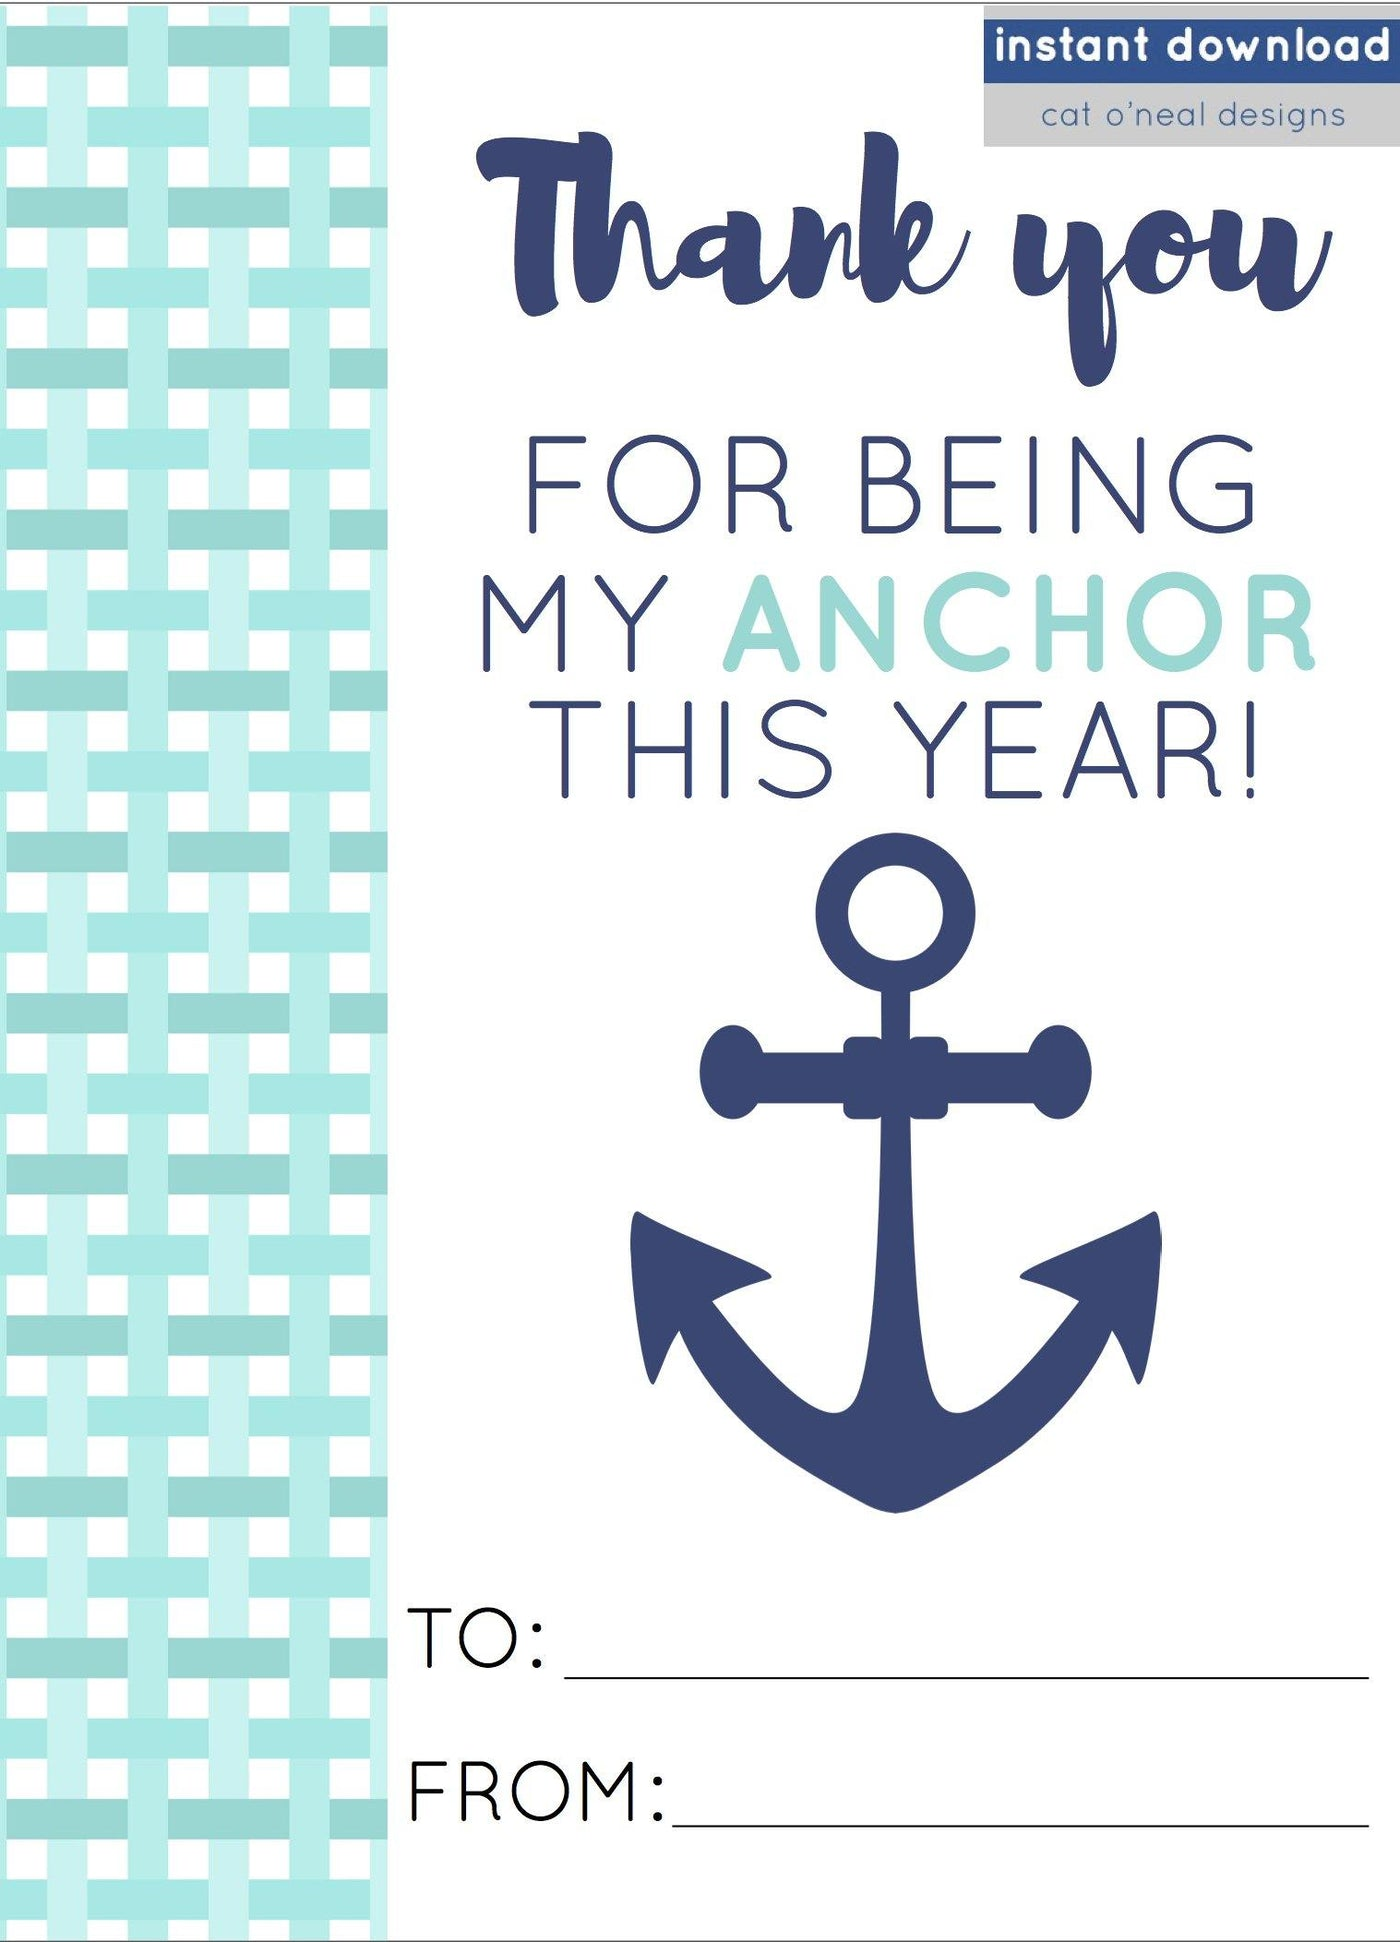 photo regarding Printable Anchor named PRINTABLE THANK Yourself FOR Becoming MY ANCHOR THIS 12 months